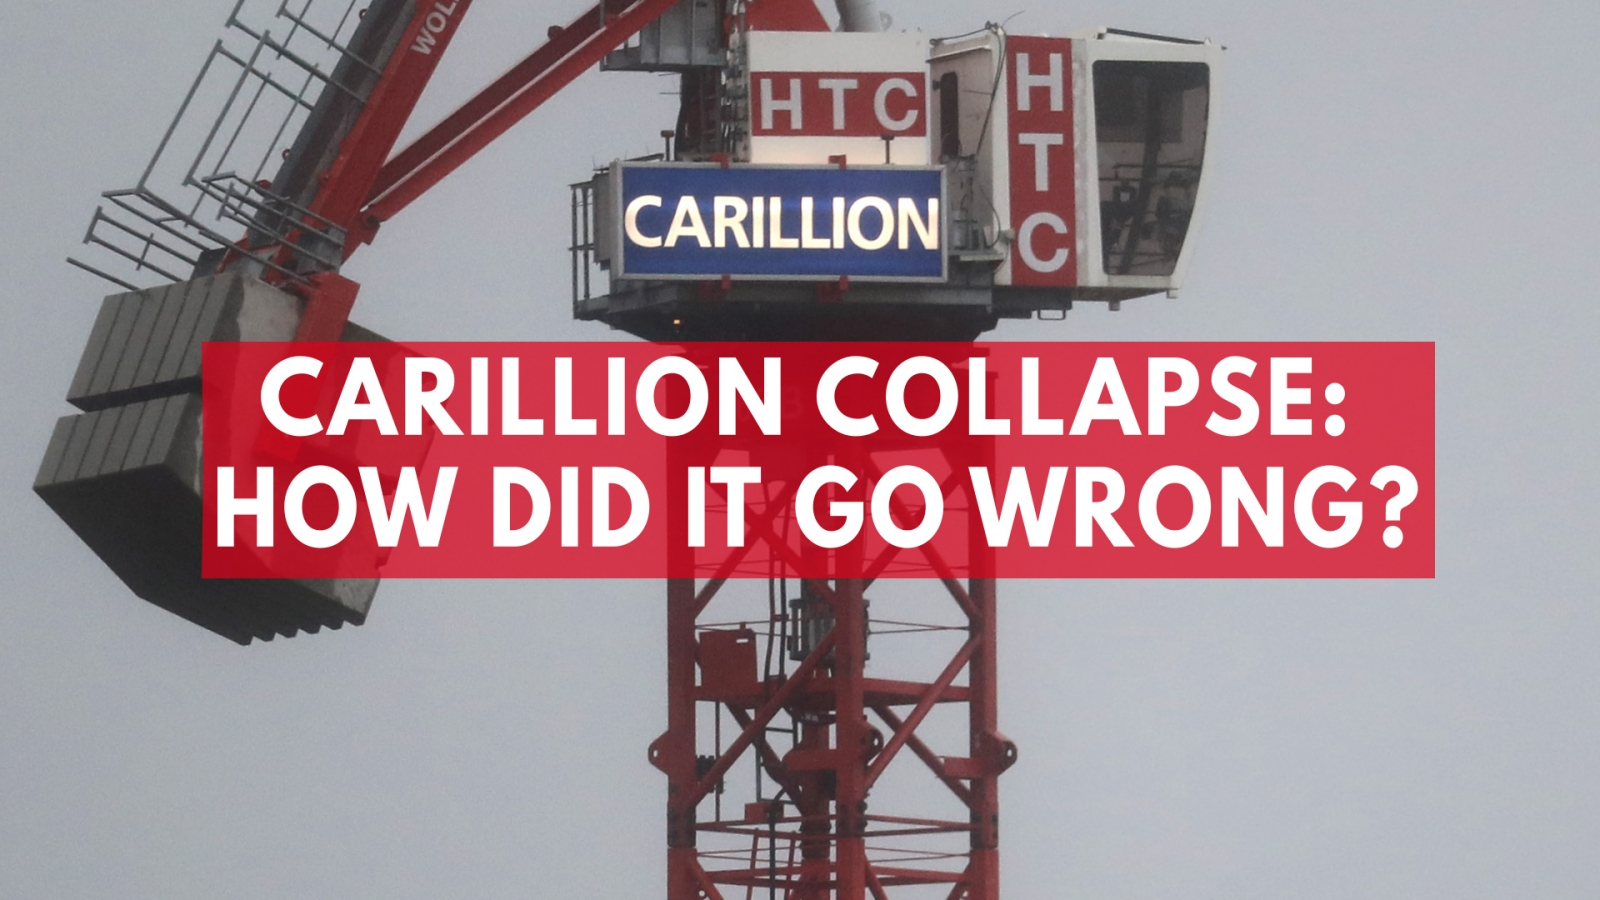 Carillion collapse: How did it go wrong?